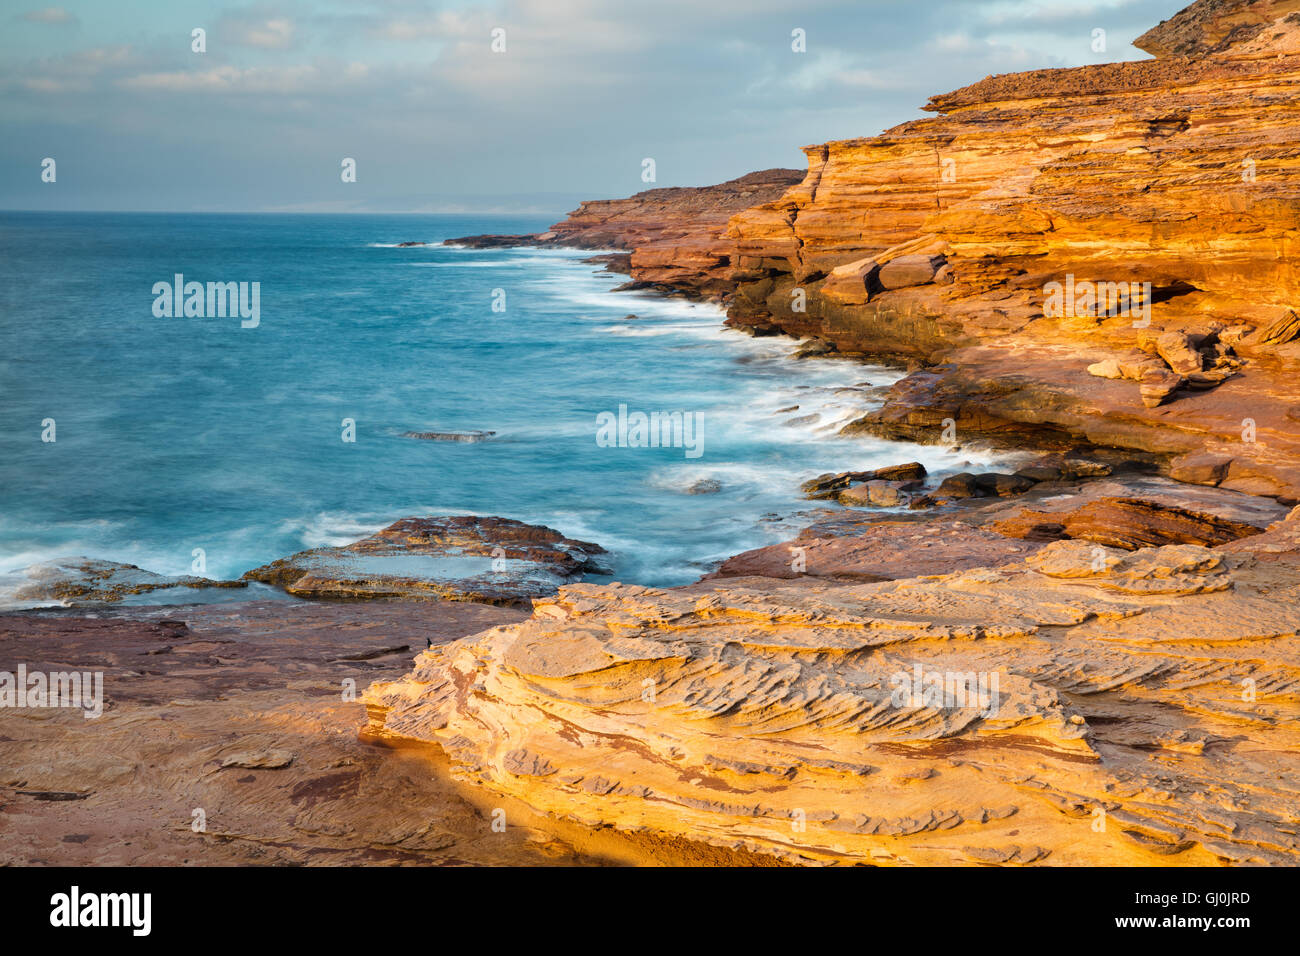 the coastal cliffs of Kalbarri National Park at Pot Alley, Western Australia - Stock Image